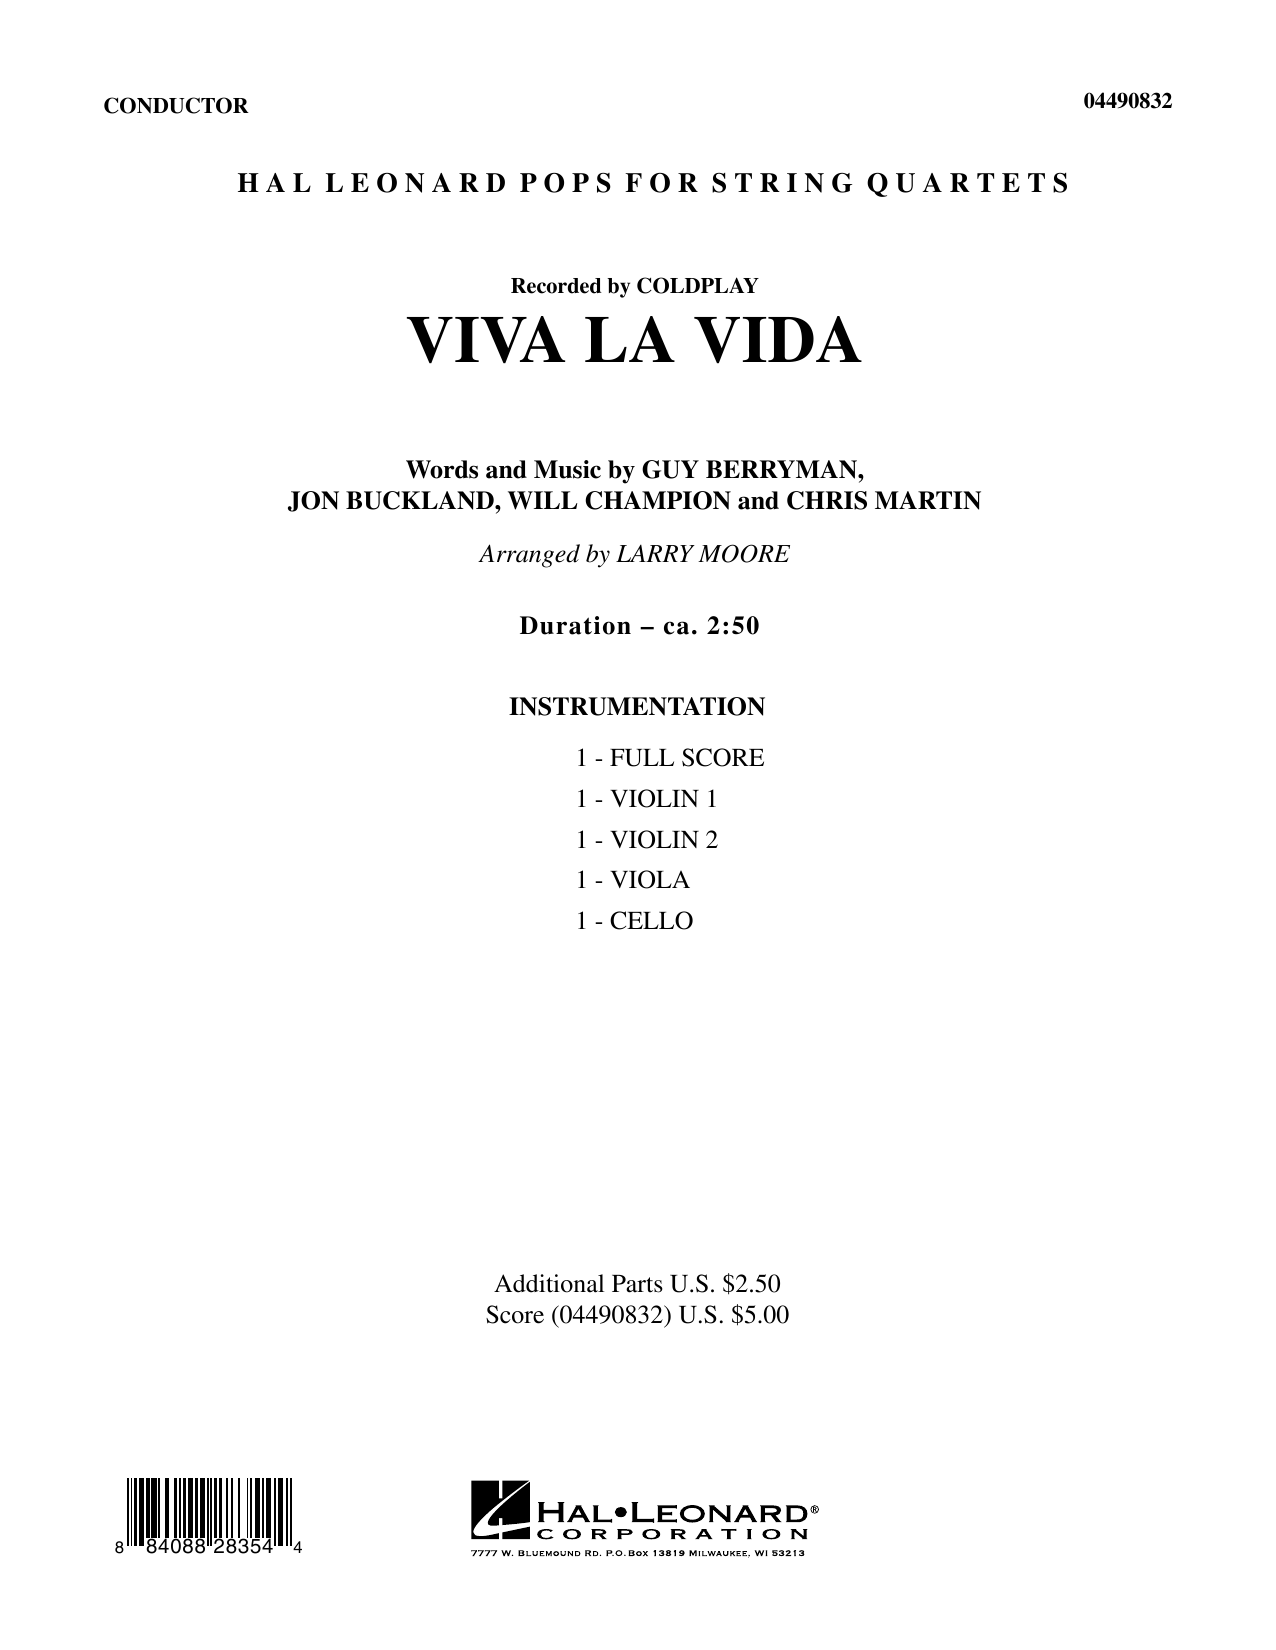 Viva La Vida (COMPLETE) sheet music for orchestra (Strings) by Will Champion, Chris Martin, Coldplay, Guy Berryman, Jon Buckland and Larry Moore. Score Image Preview.